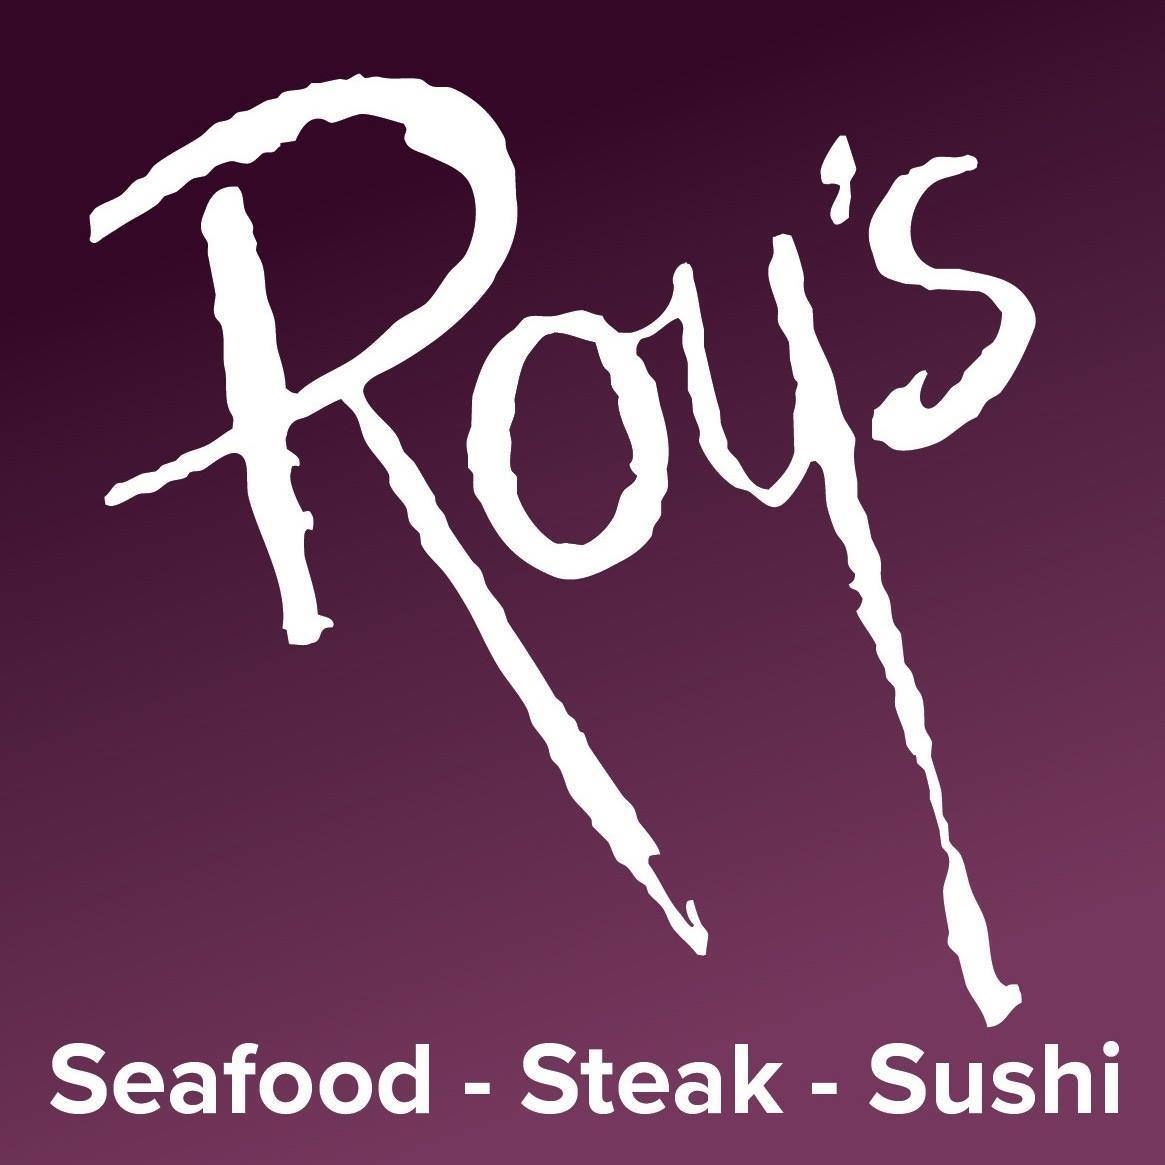 Roy's Hawaiian Fusion Cuisine – Newport Beach (CLOSED)